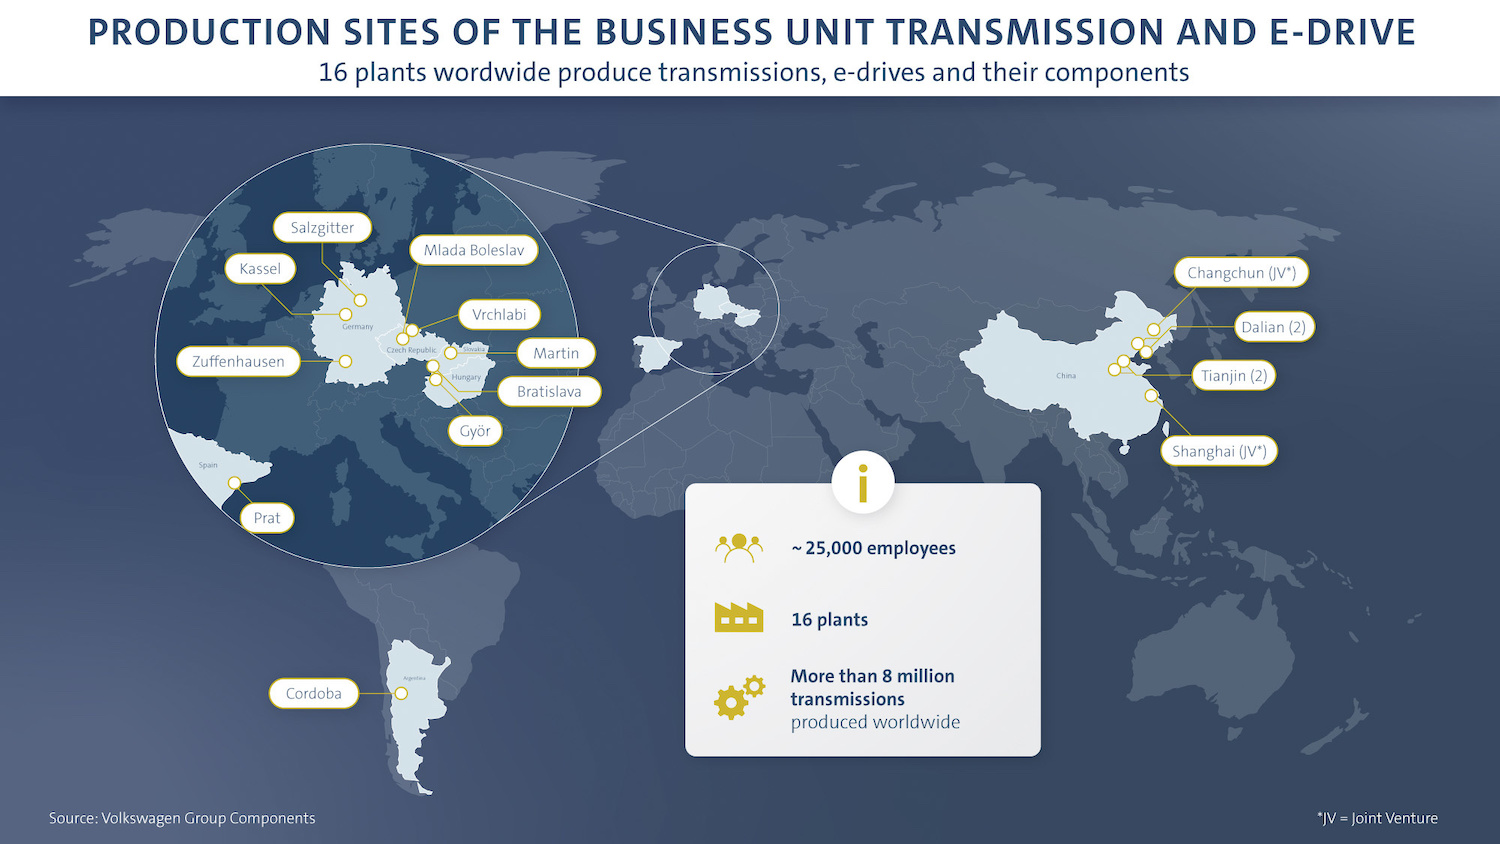 volkswagen transmission production site infographic